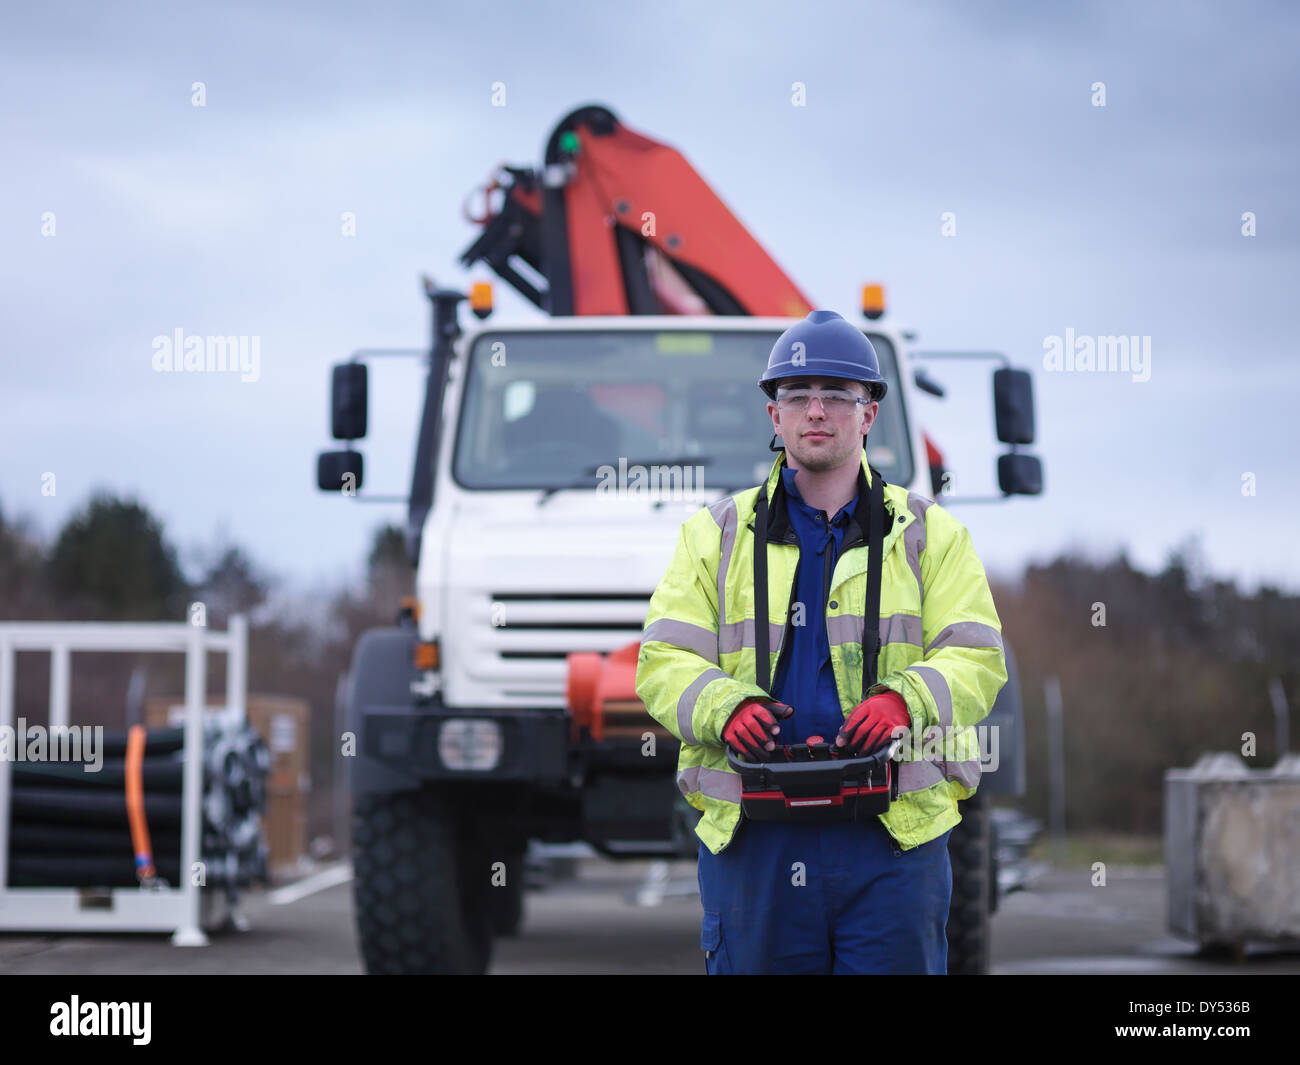 Portrait of Emergency Response Team worker training with truck crane - Stock Image